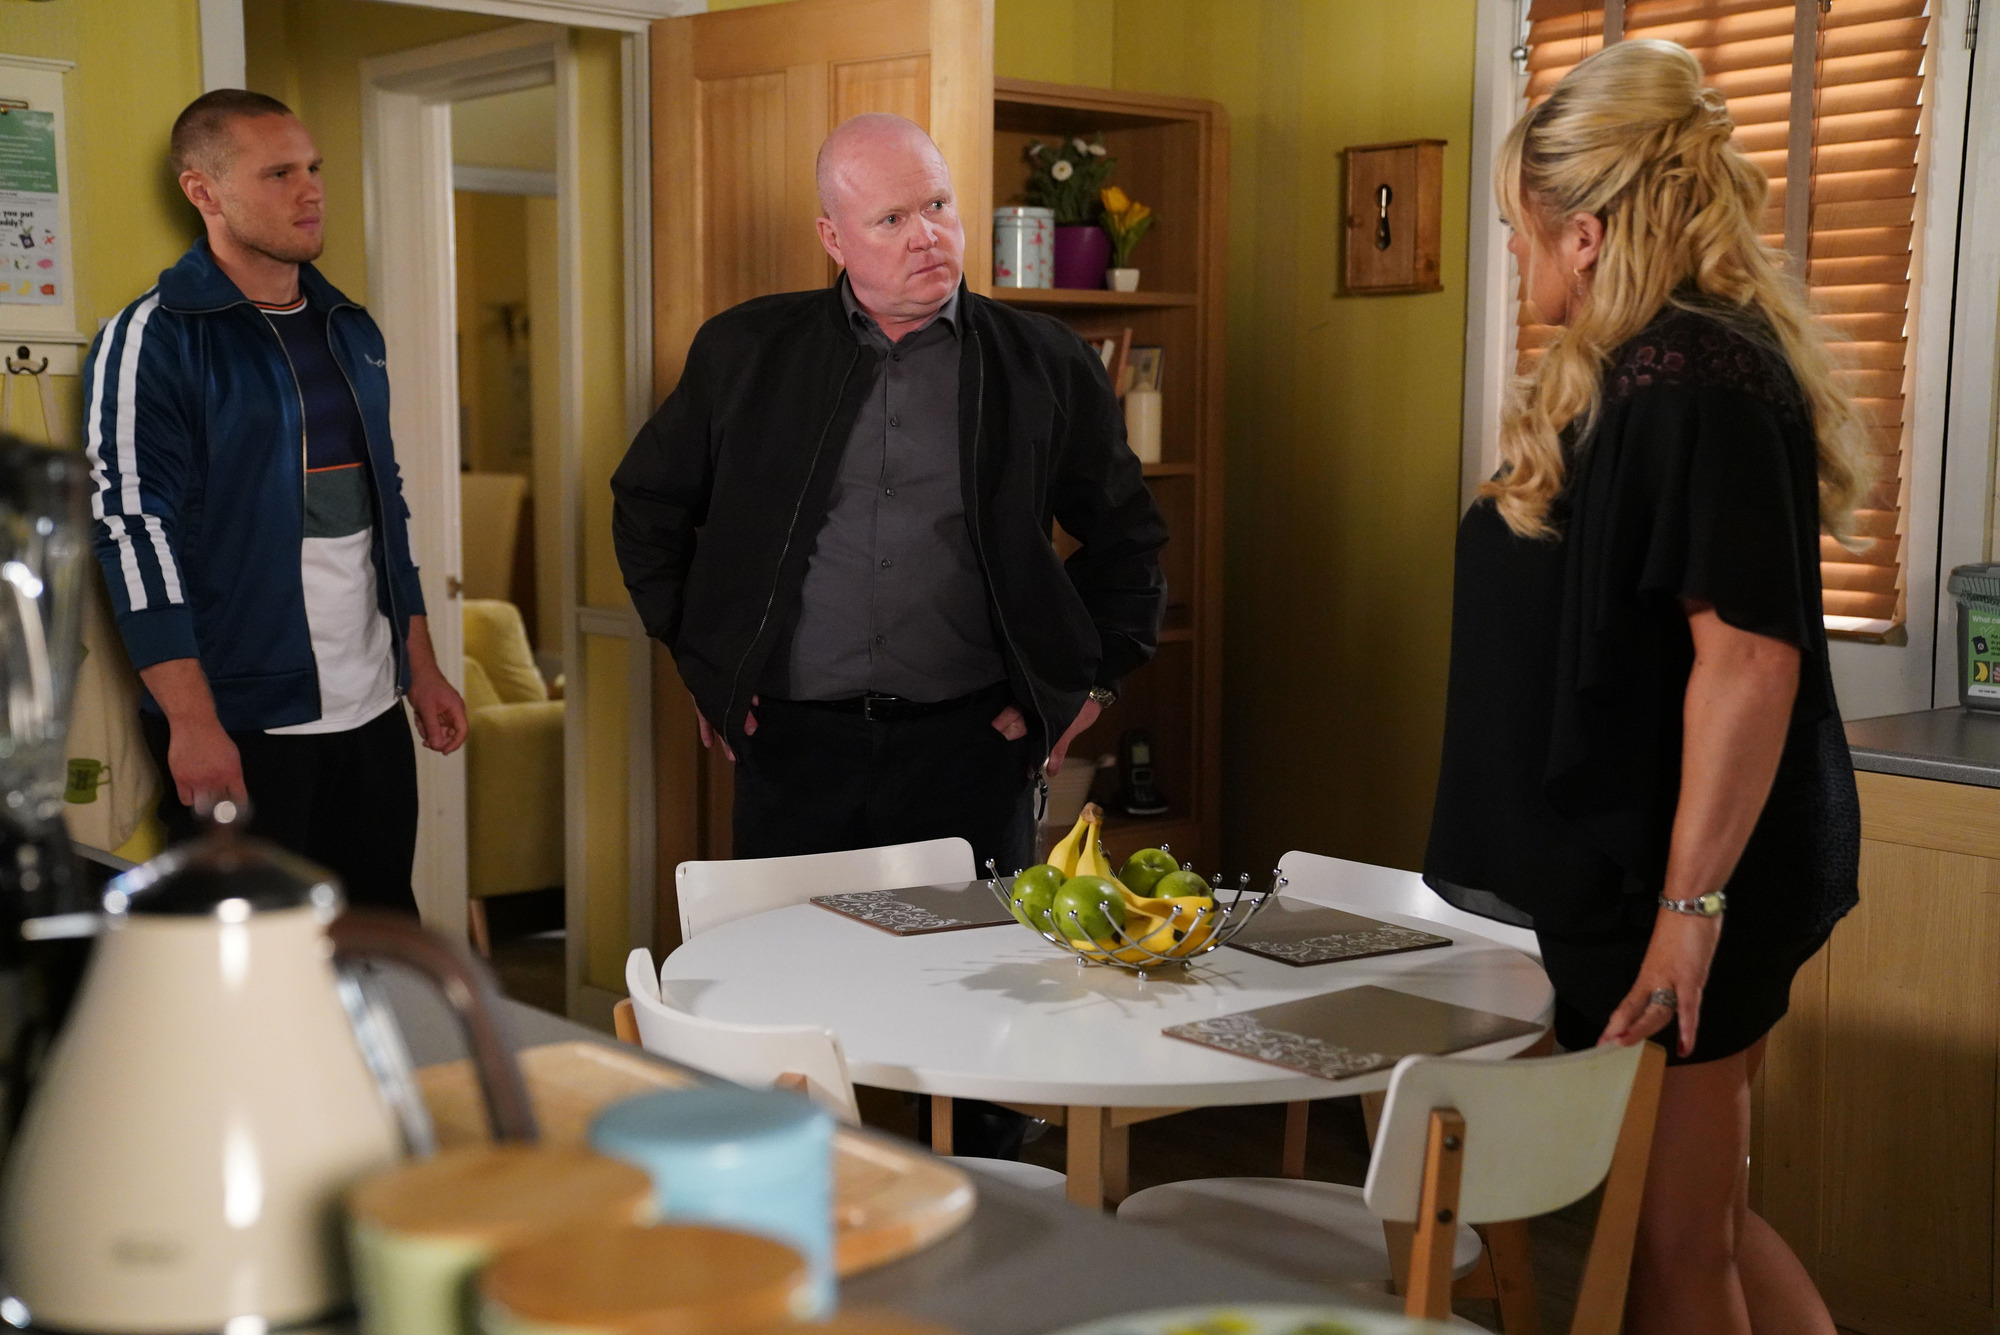 EastEnders spoilers: Sharon Mitchell's affair with Keanu Taylor revealed after Phil attack?